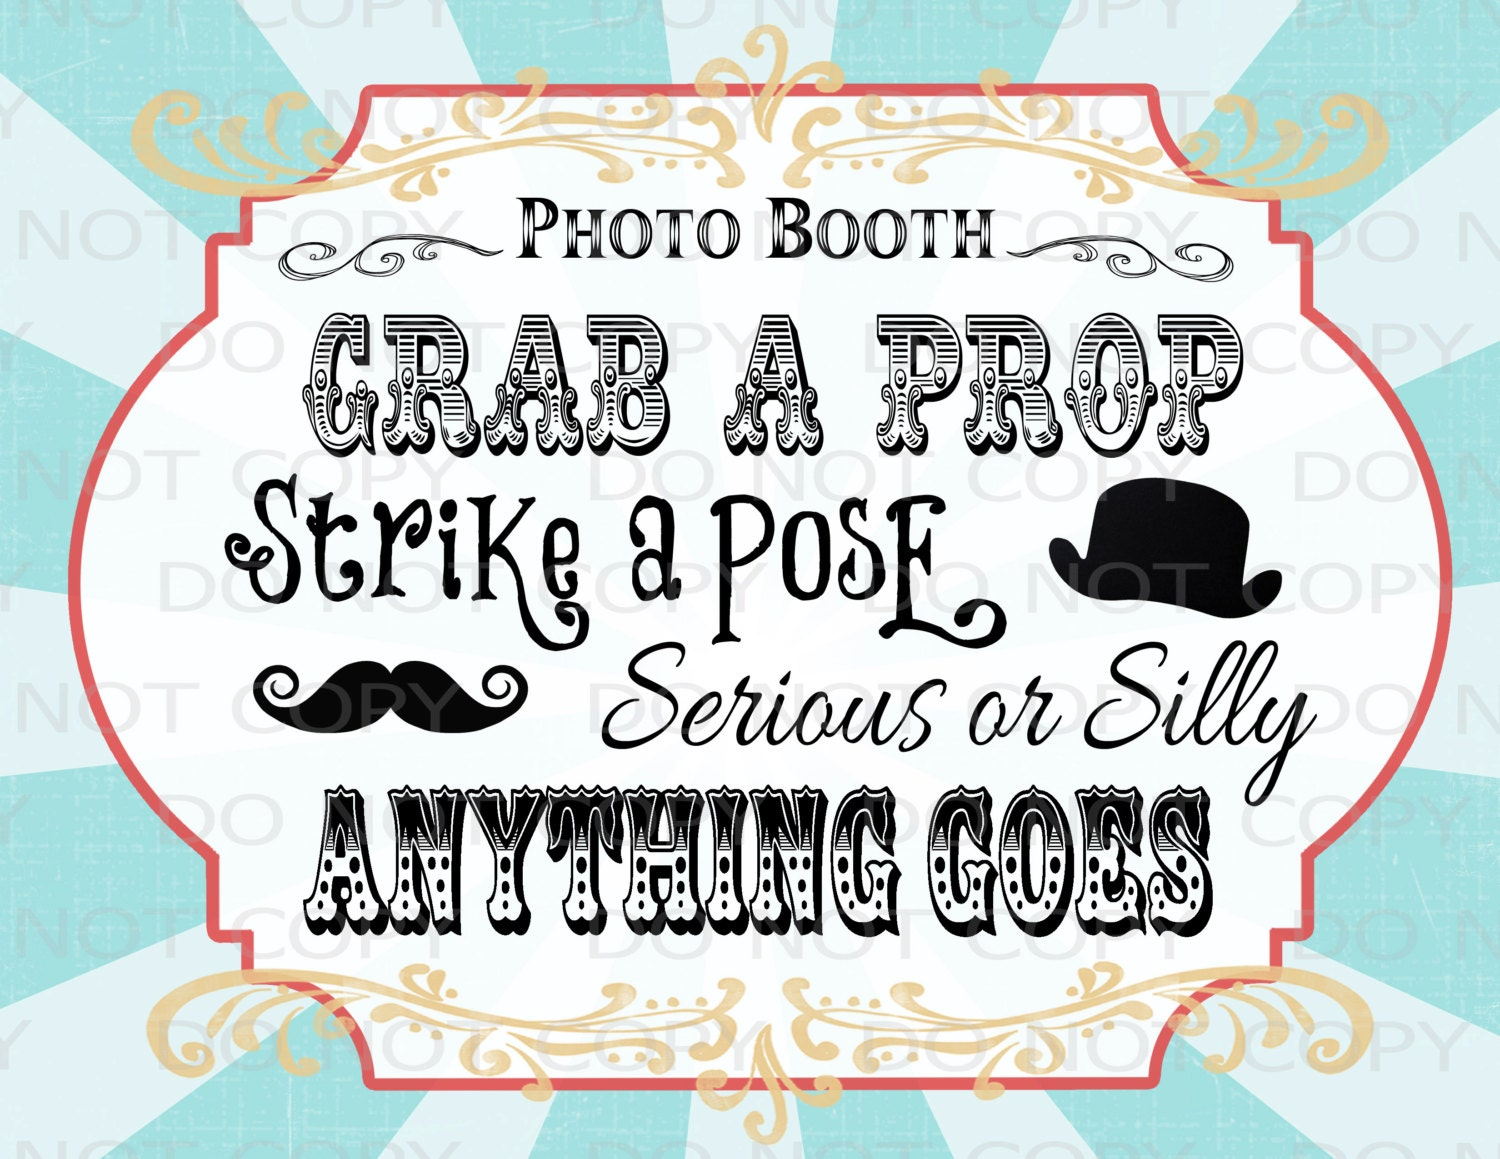 Printable diy vintage circus photo booth prop sign 85 zoom solutioingenieria Image collections